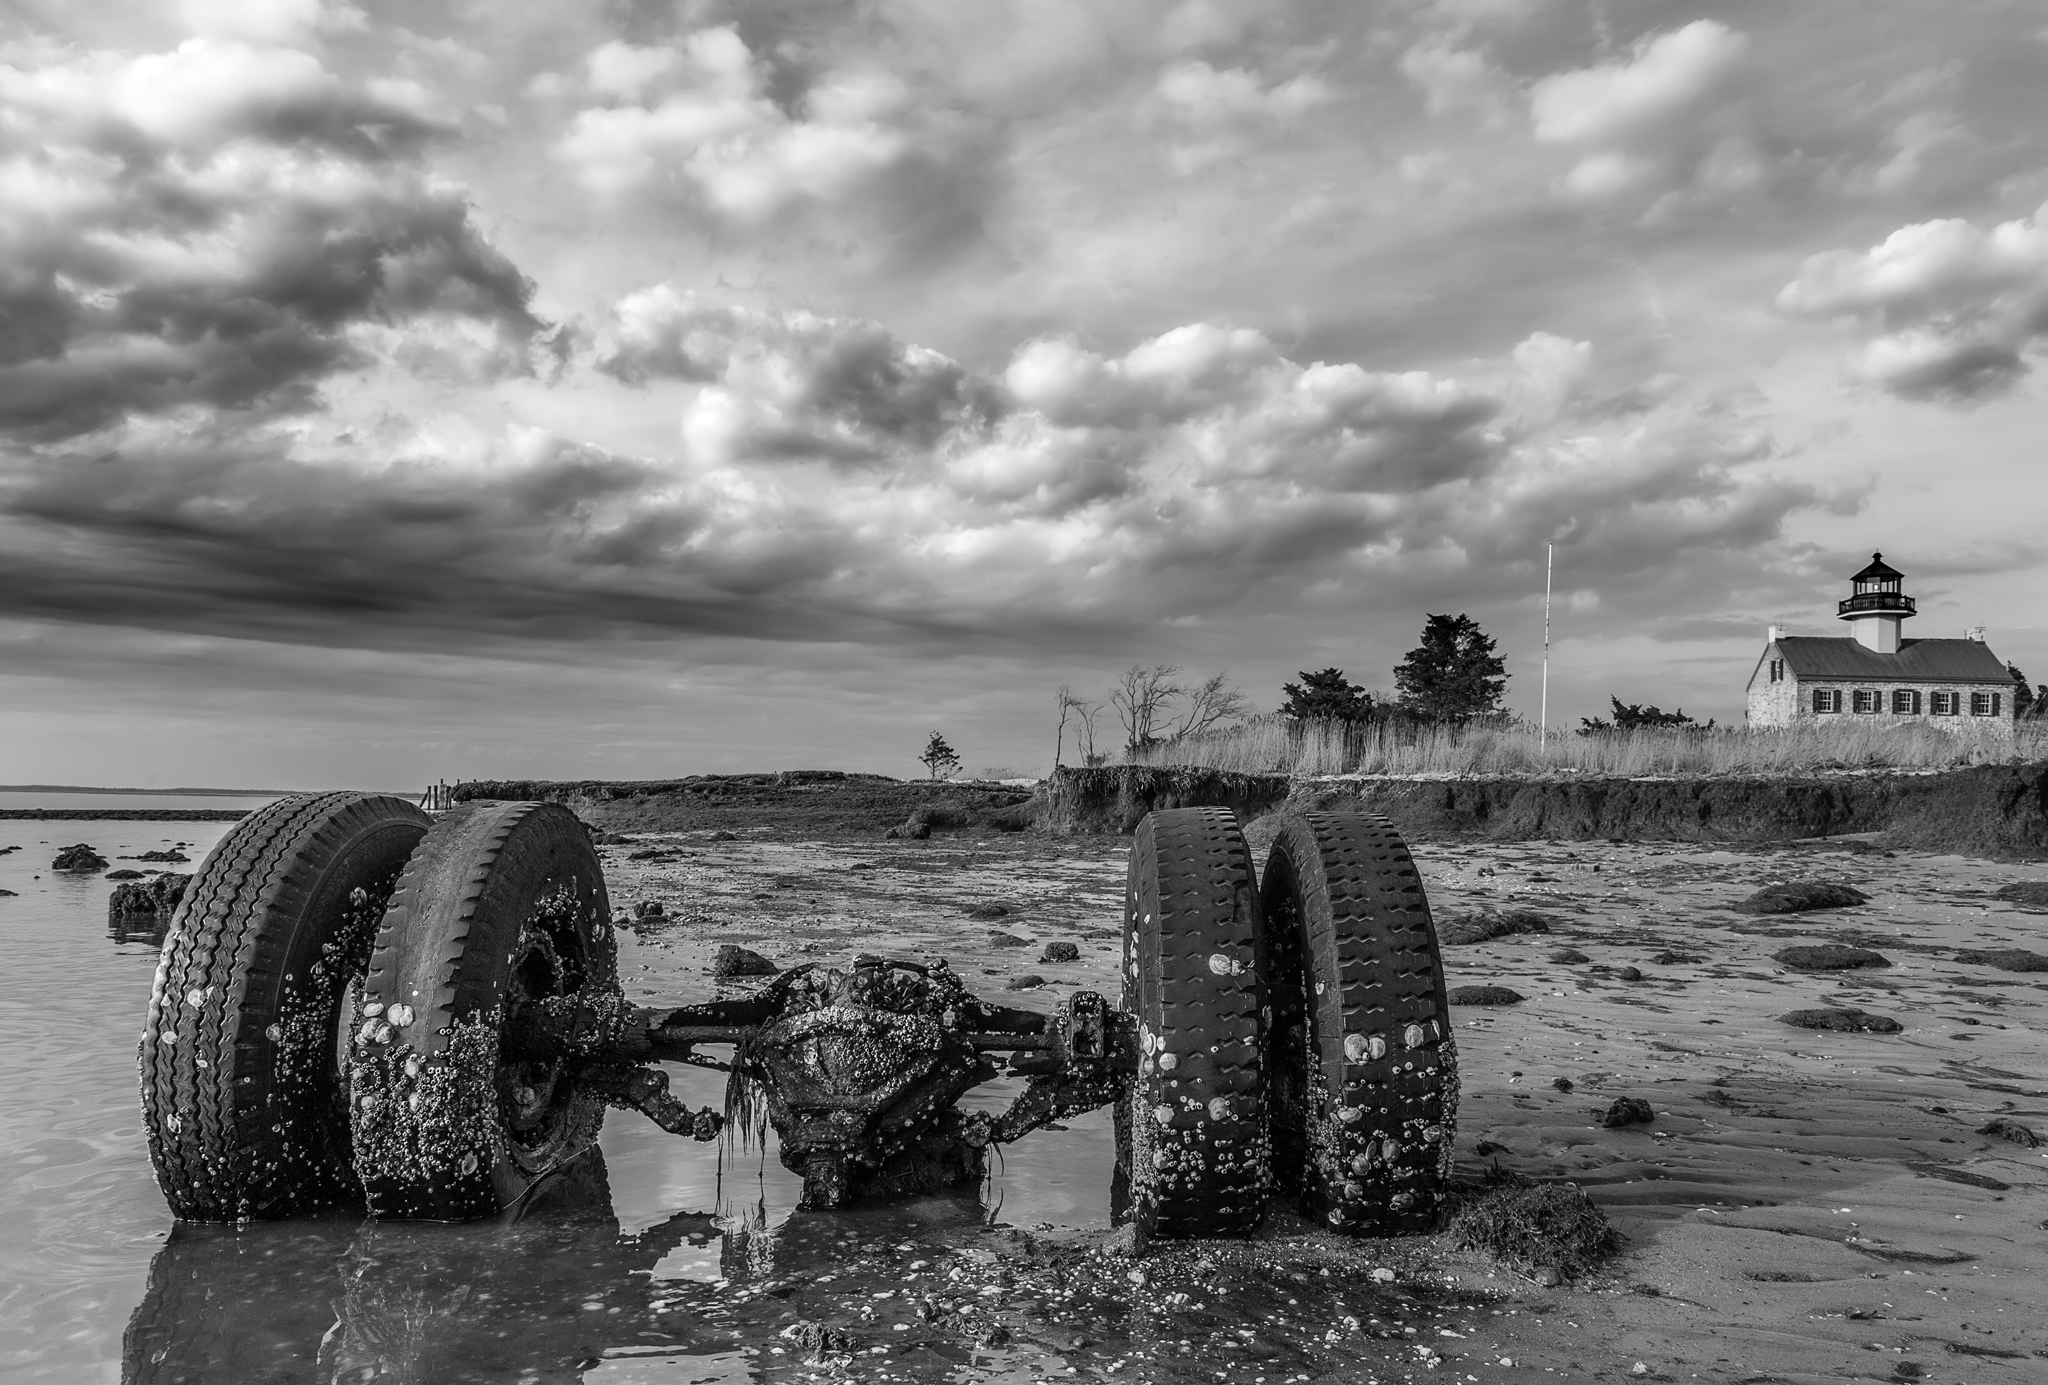 East-Point-Lighthouse-Shipwreck-March-2016-Jason-Gambone-14-PSedit-1